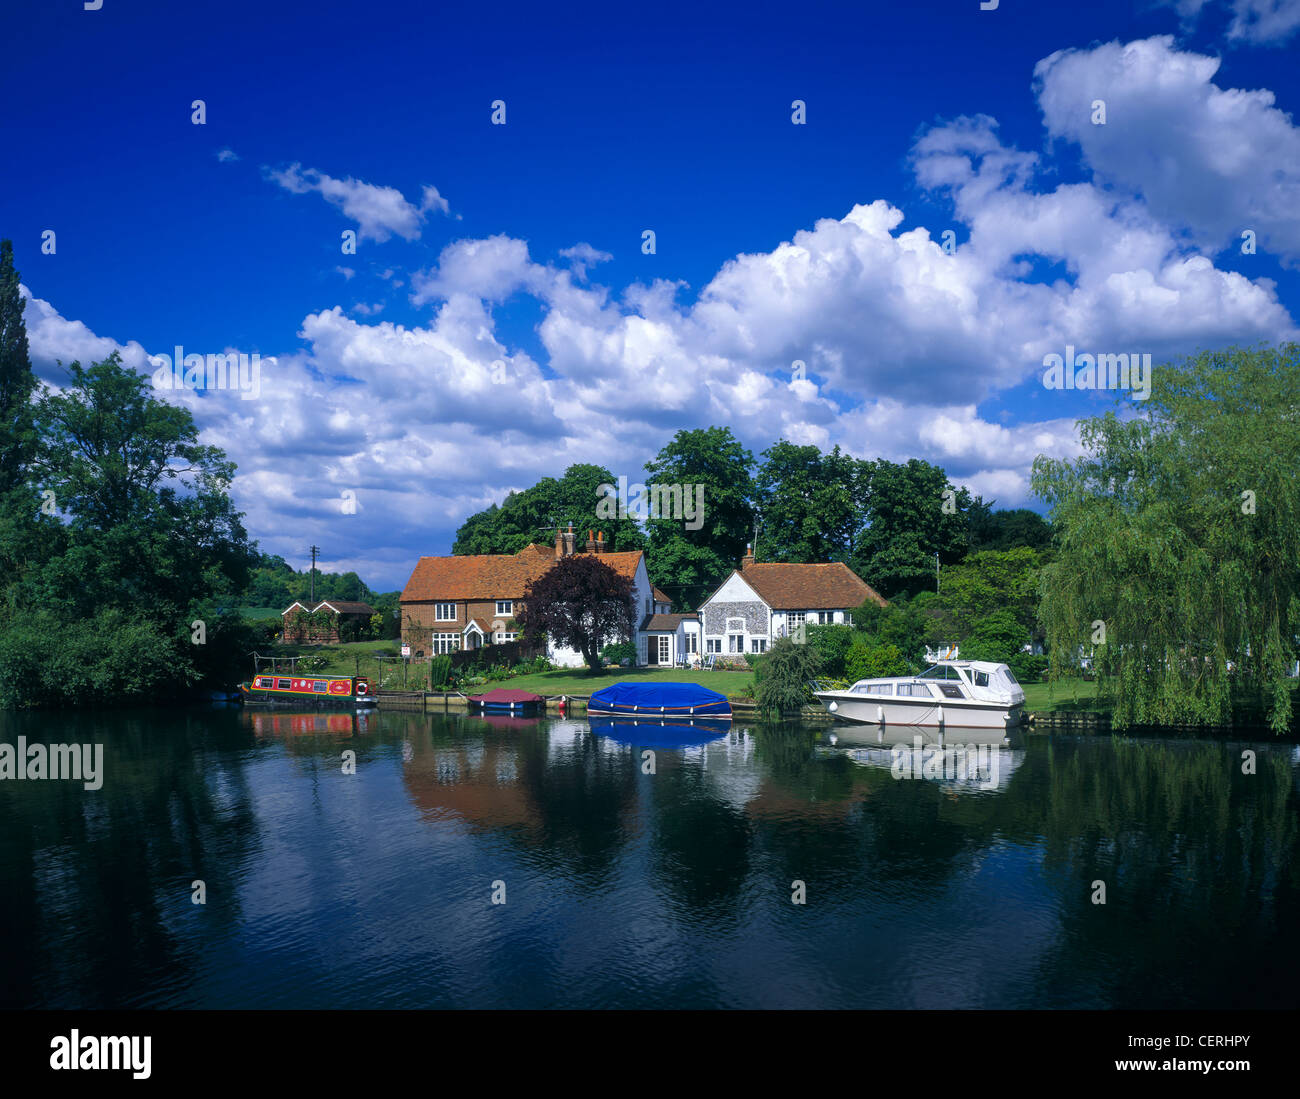 A scene on the River Thames at Hambleden. - Stock Image